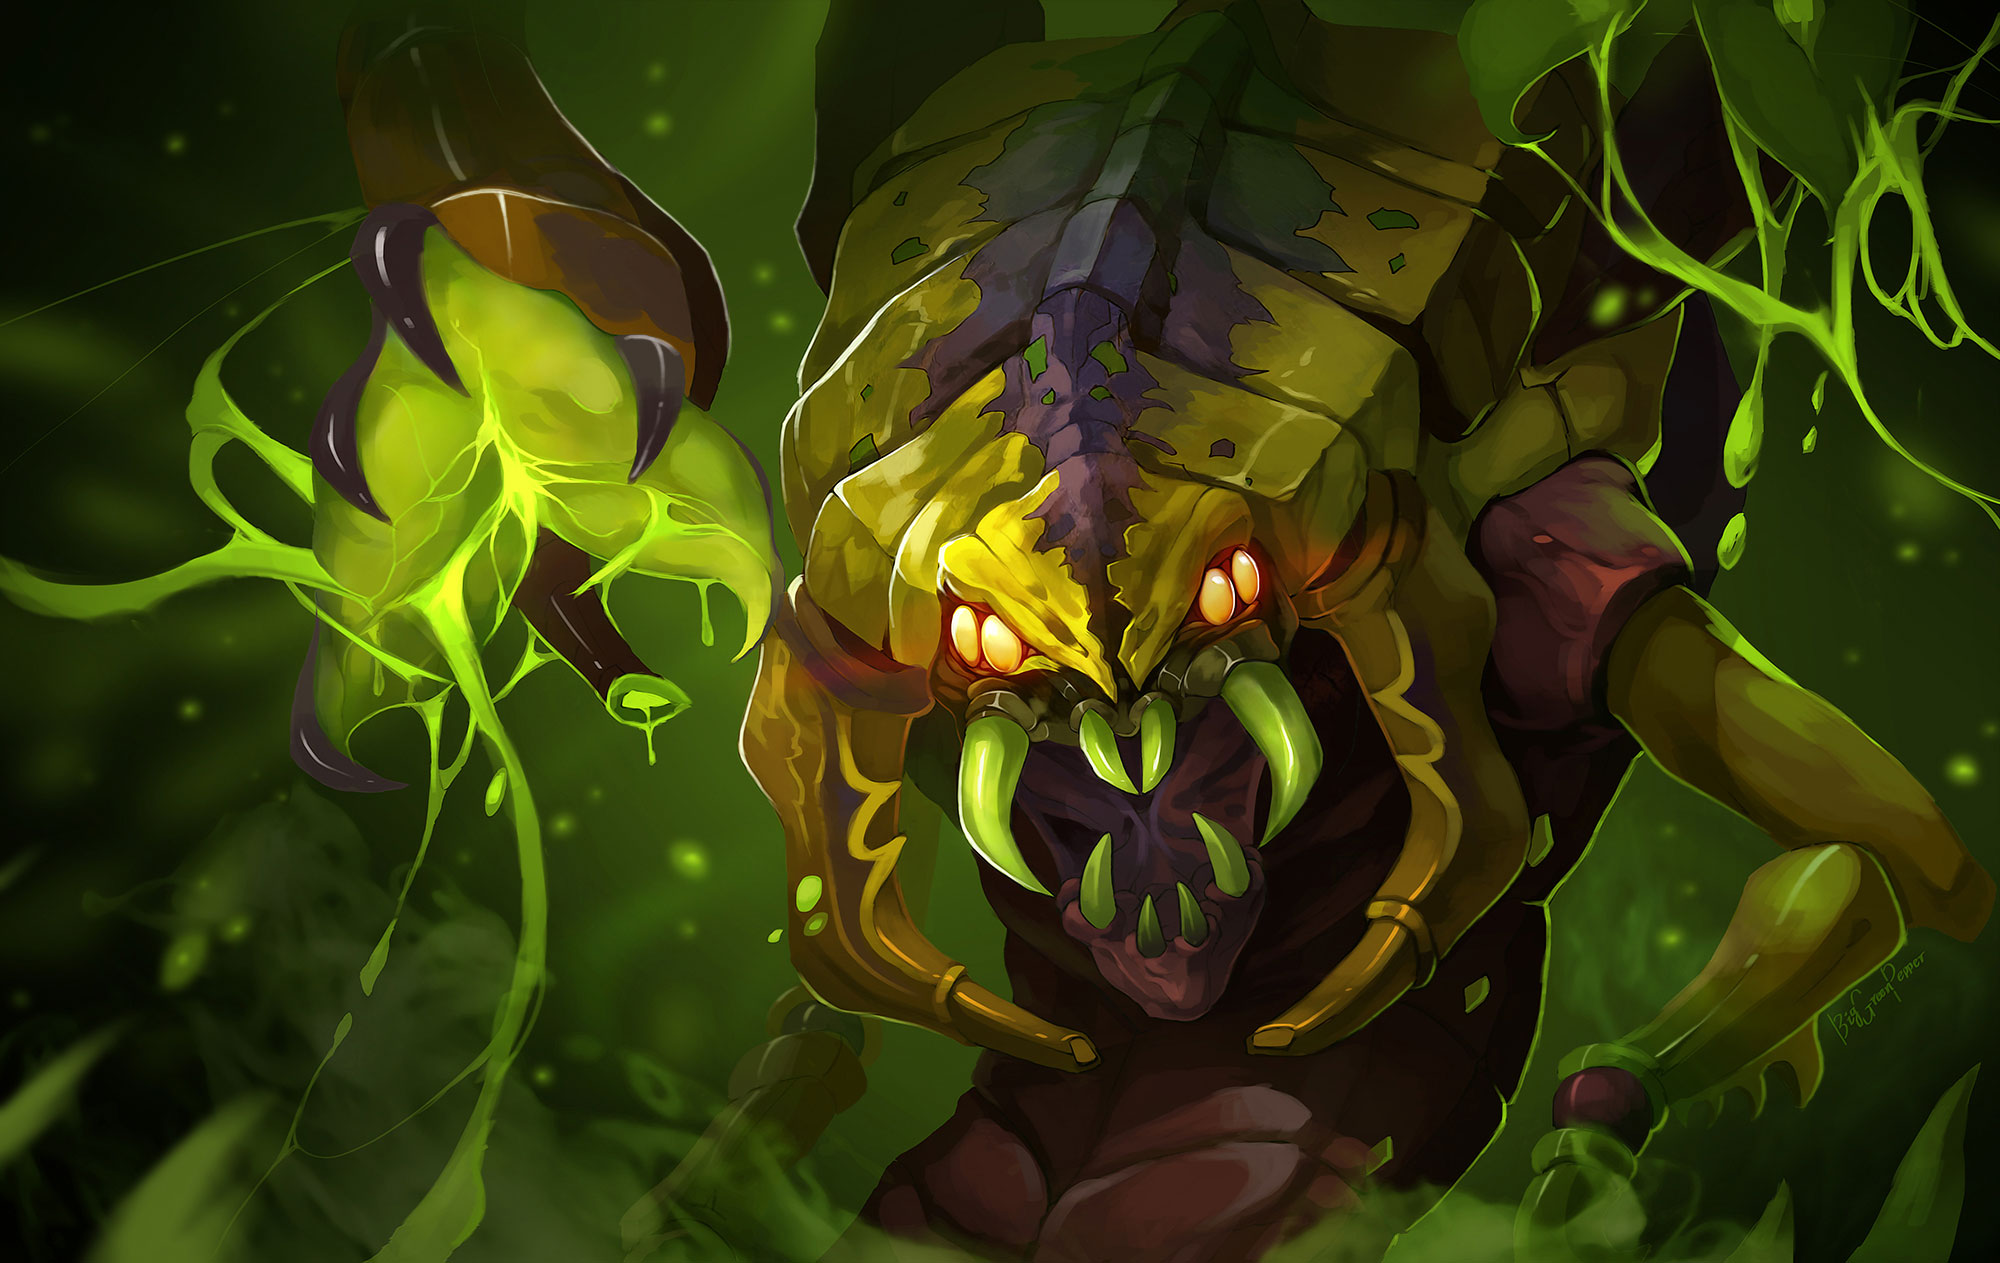 dota_2_lesale_deathbringer_Venomancer_by_biggreenpepper